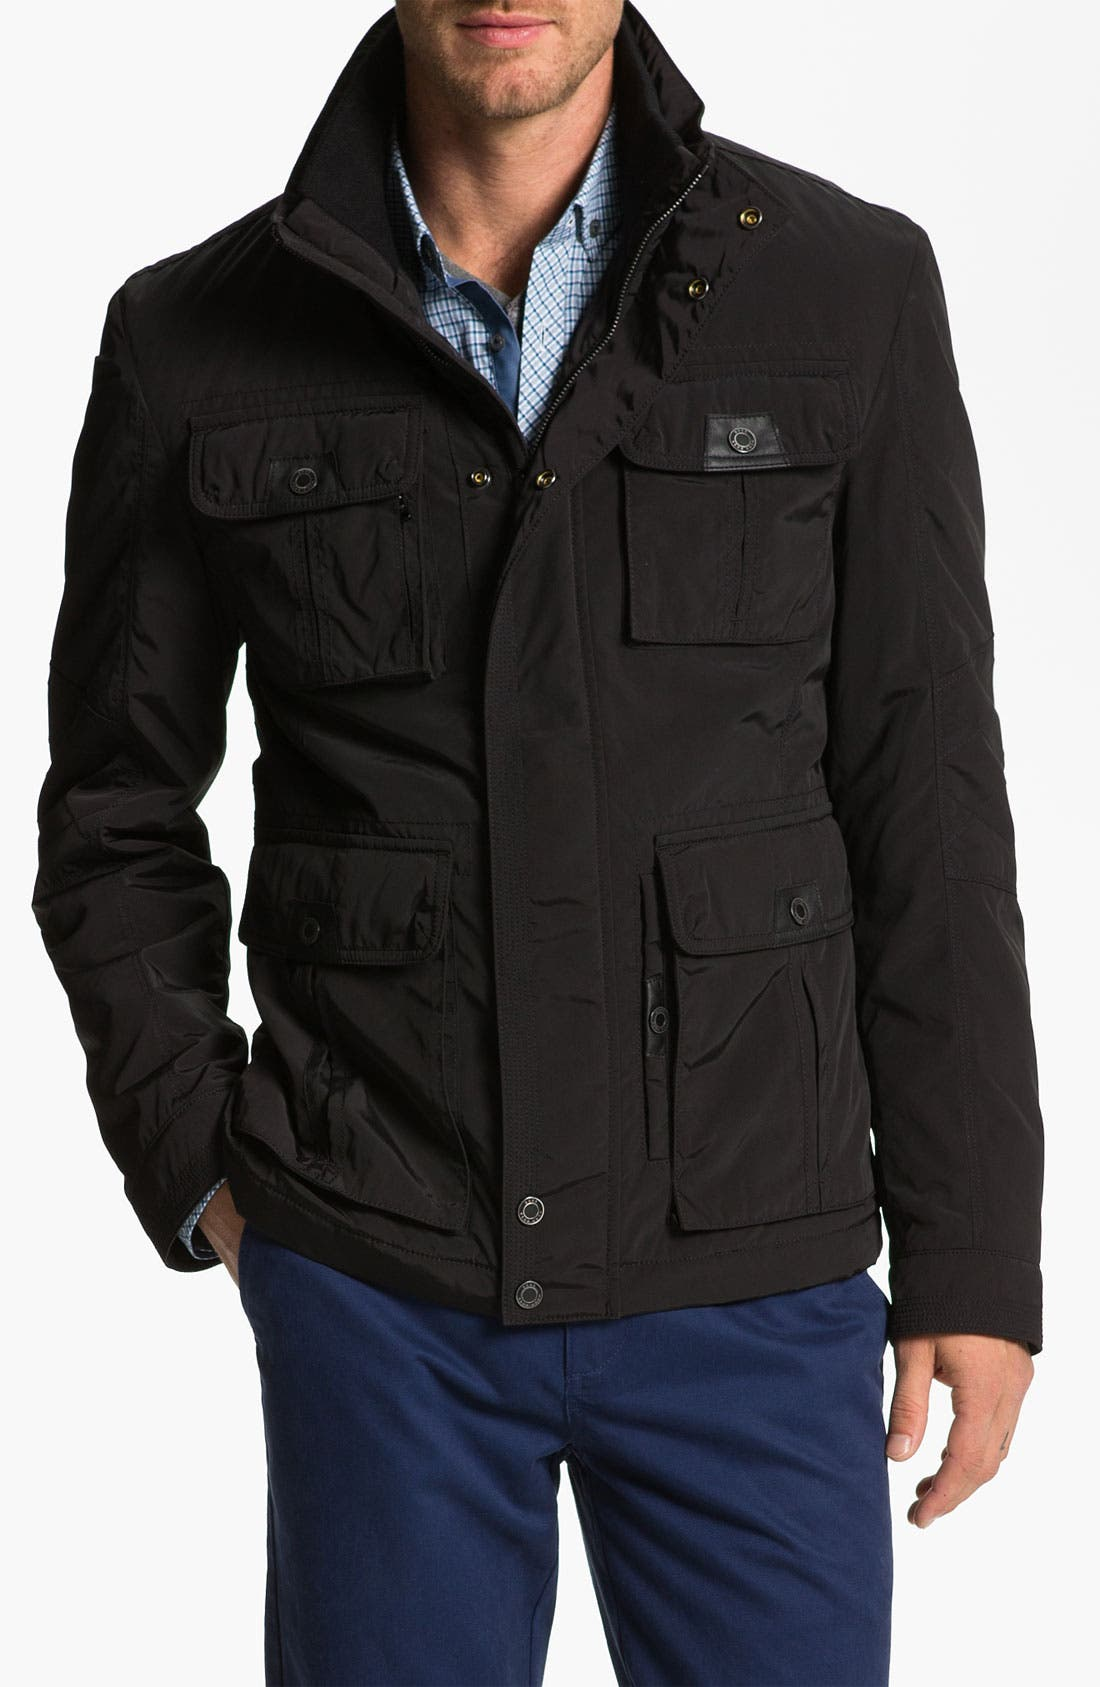 Alternate Image 1 Selected - BOSS Black 'Cosey' Trim Fit Jacket